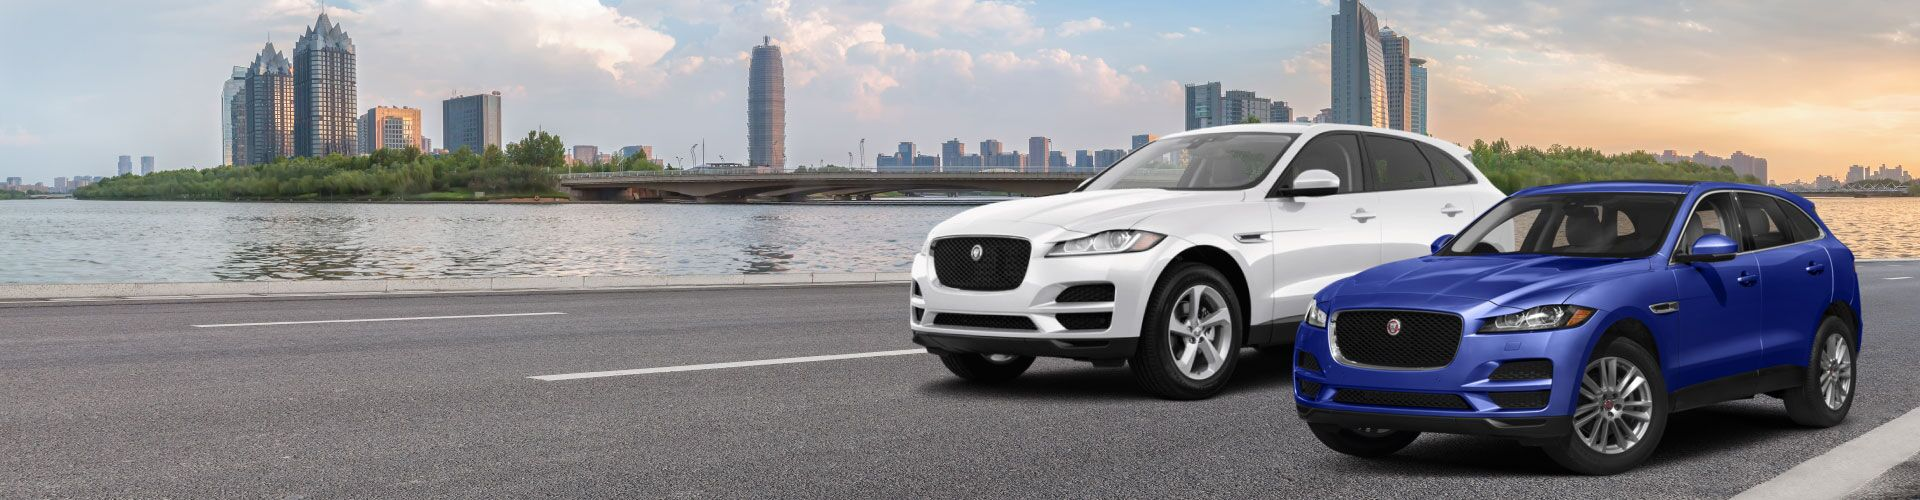 2019 Jaguar Models Offer